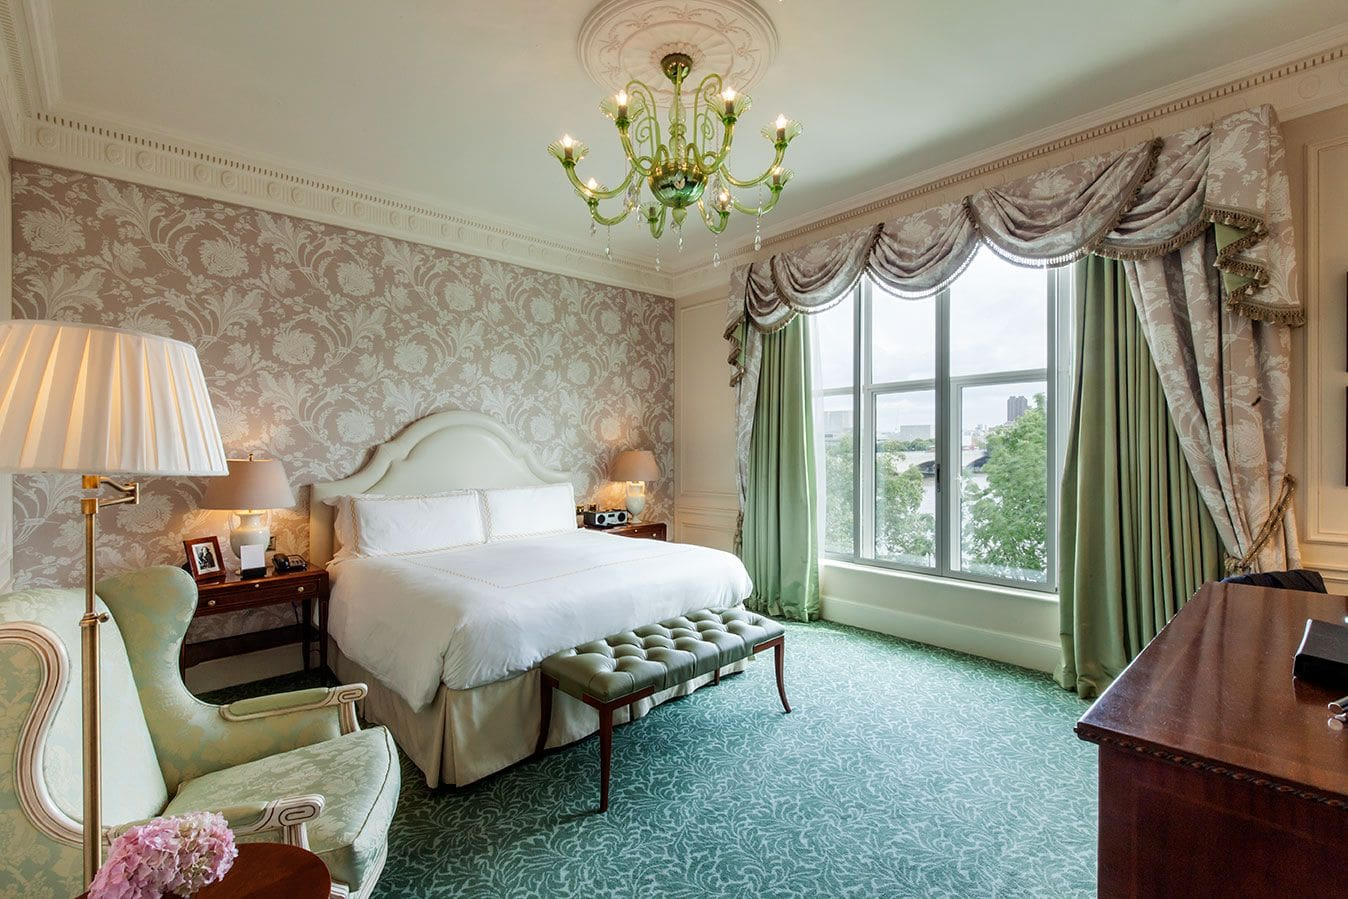 Image credit: www.fairmont.com/savoy-london/accommodations/guest-rooms